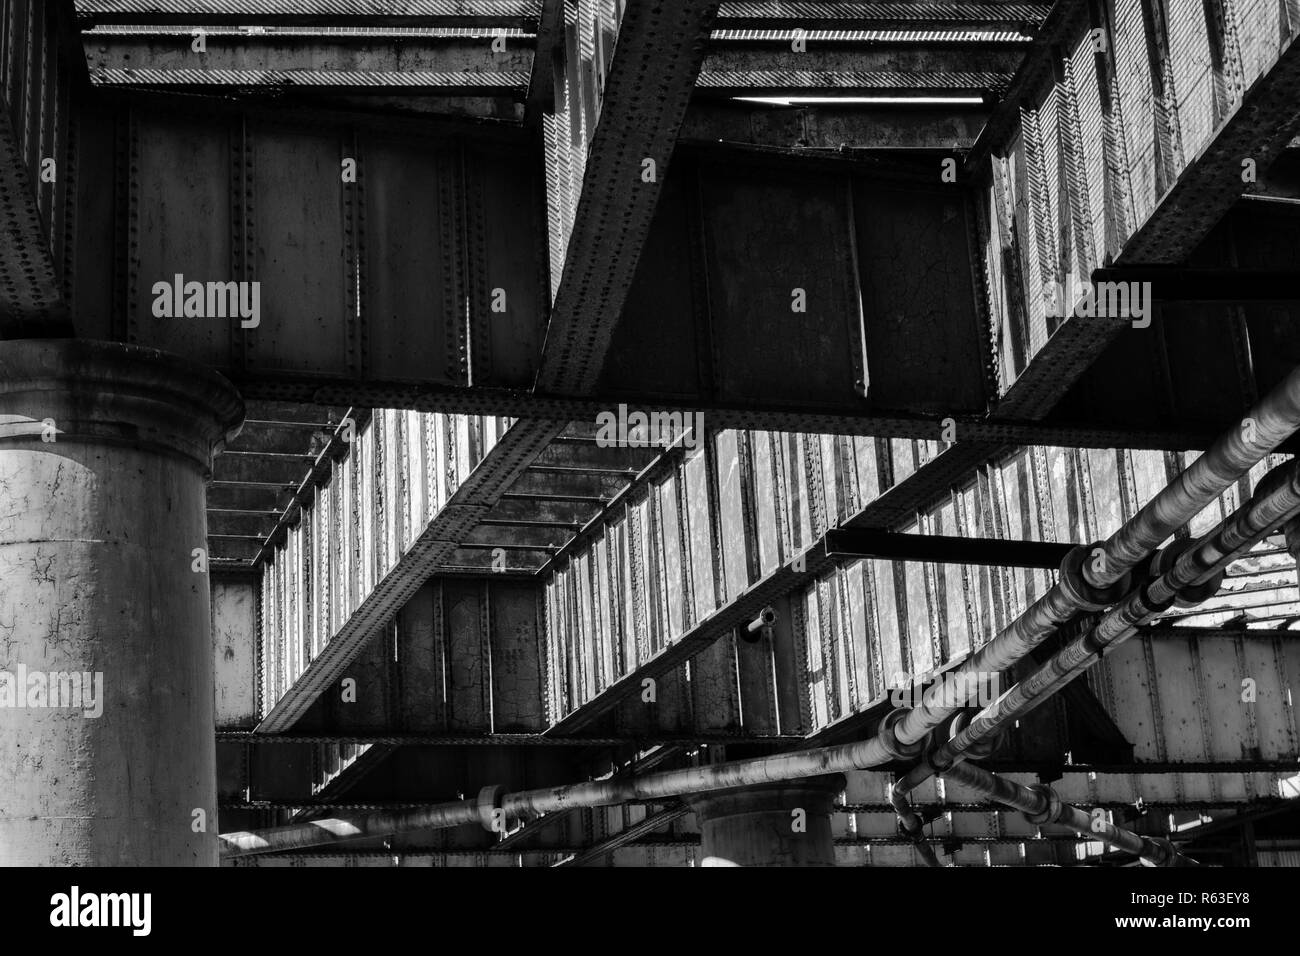 Metal beams and concrete columns of river pier underside - Stock Image